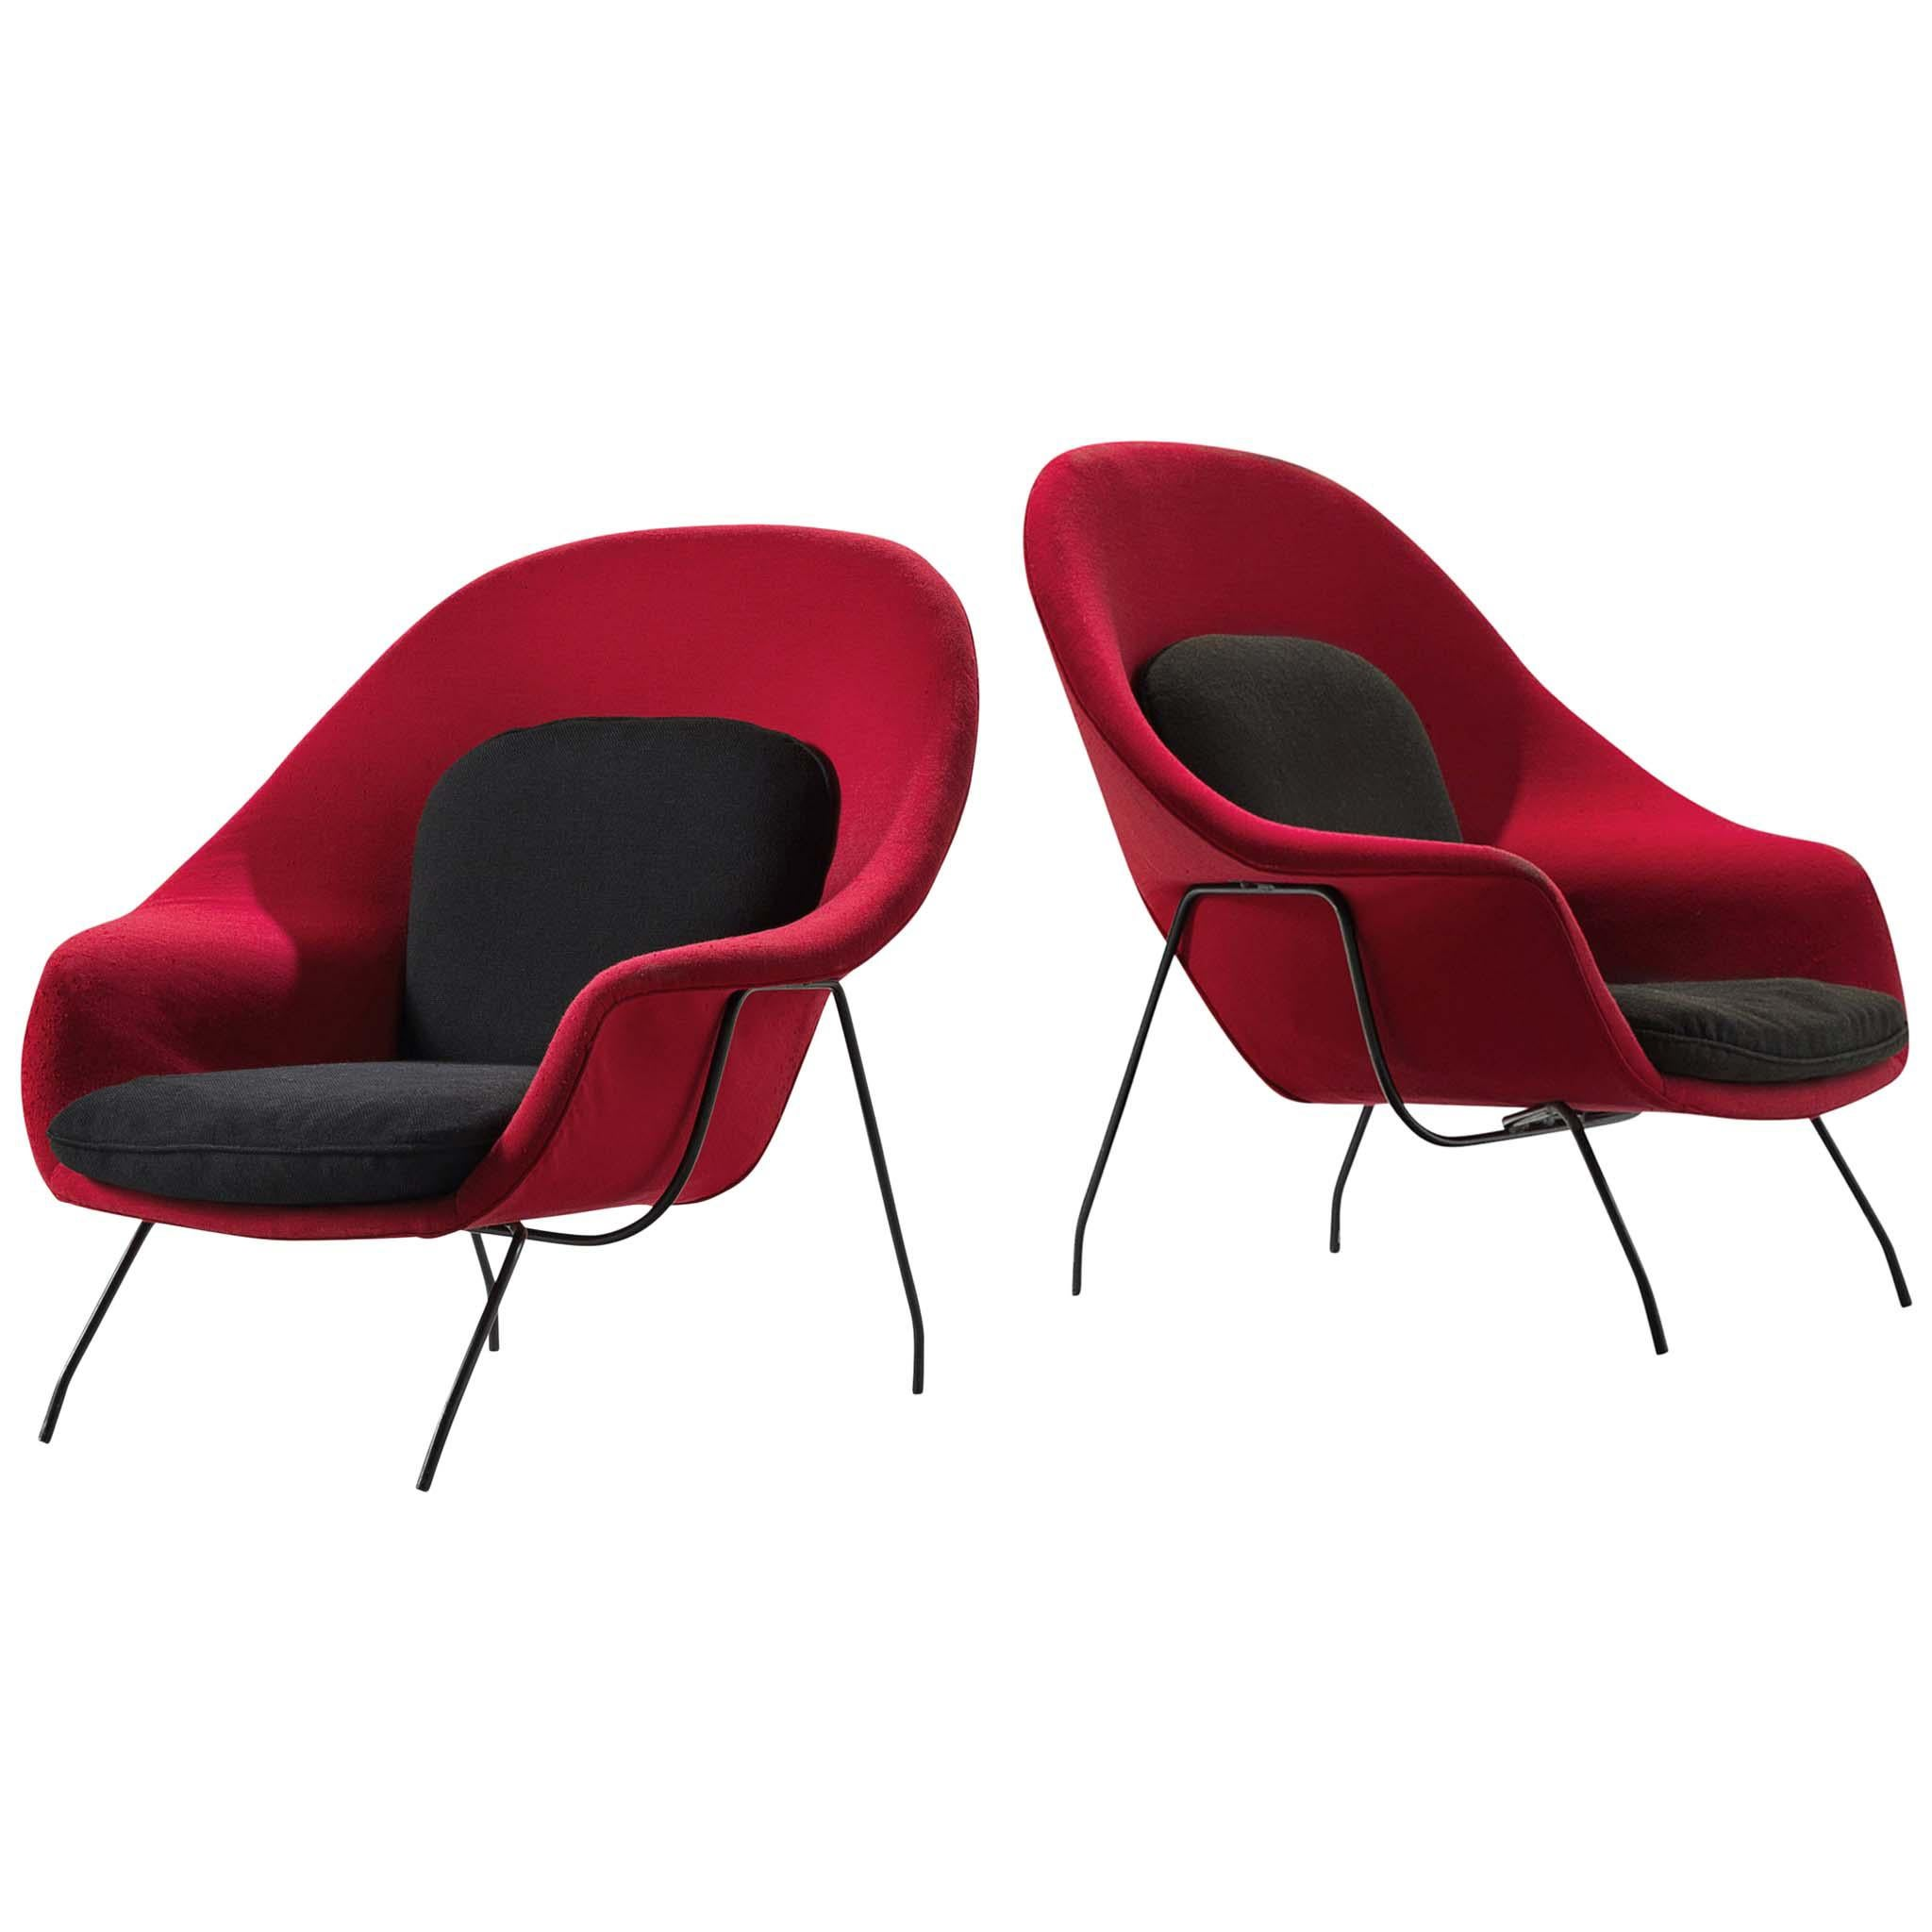 Eero Saarinen Pair of 'Womb' Lounge Chairs in Red and Black Upholstery